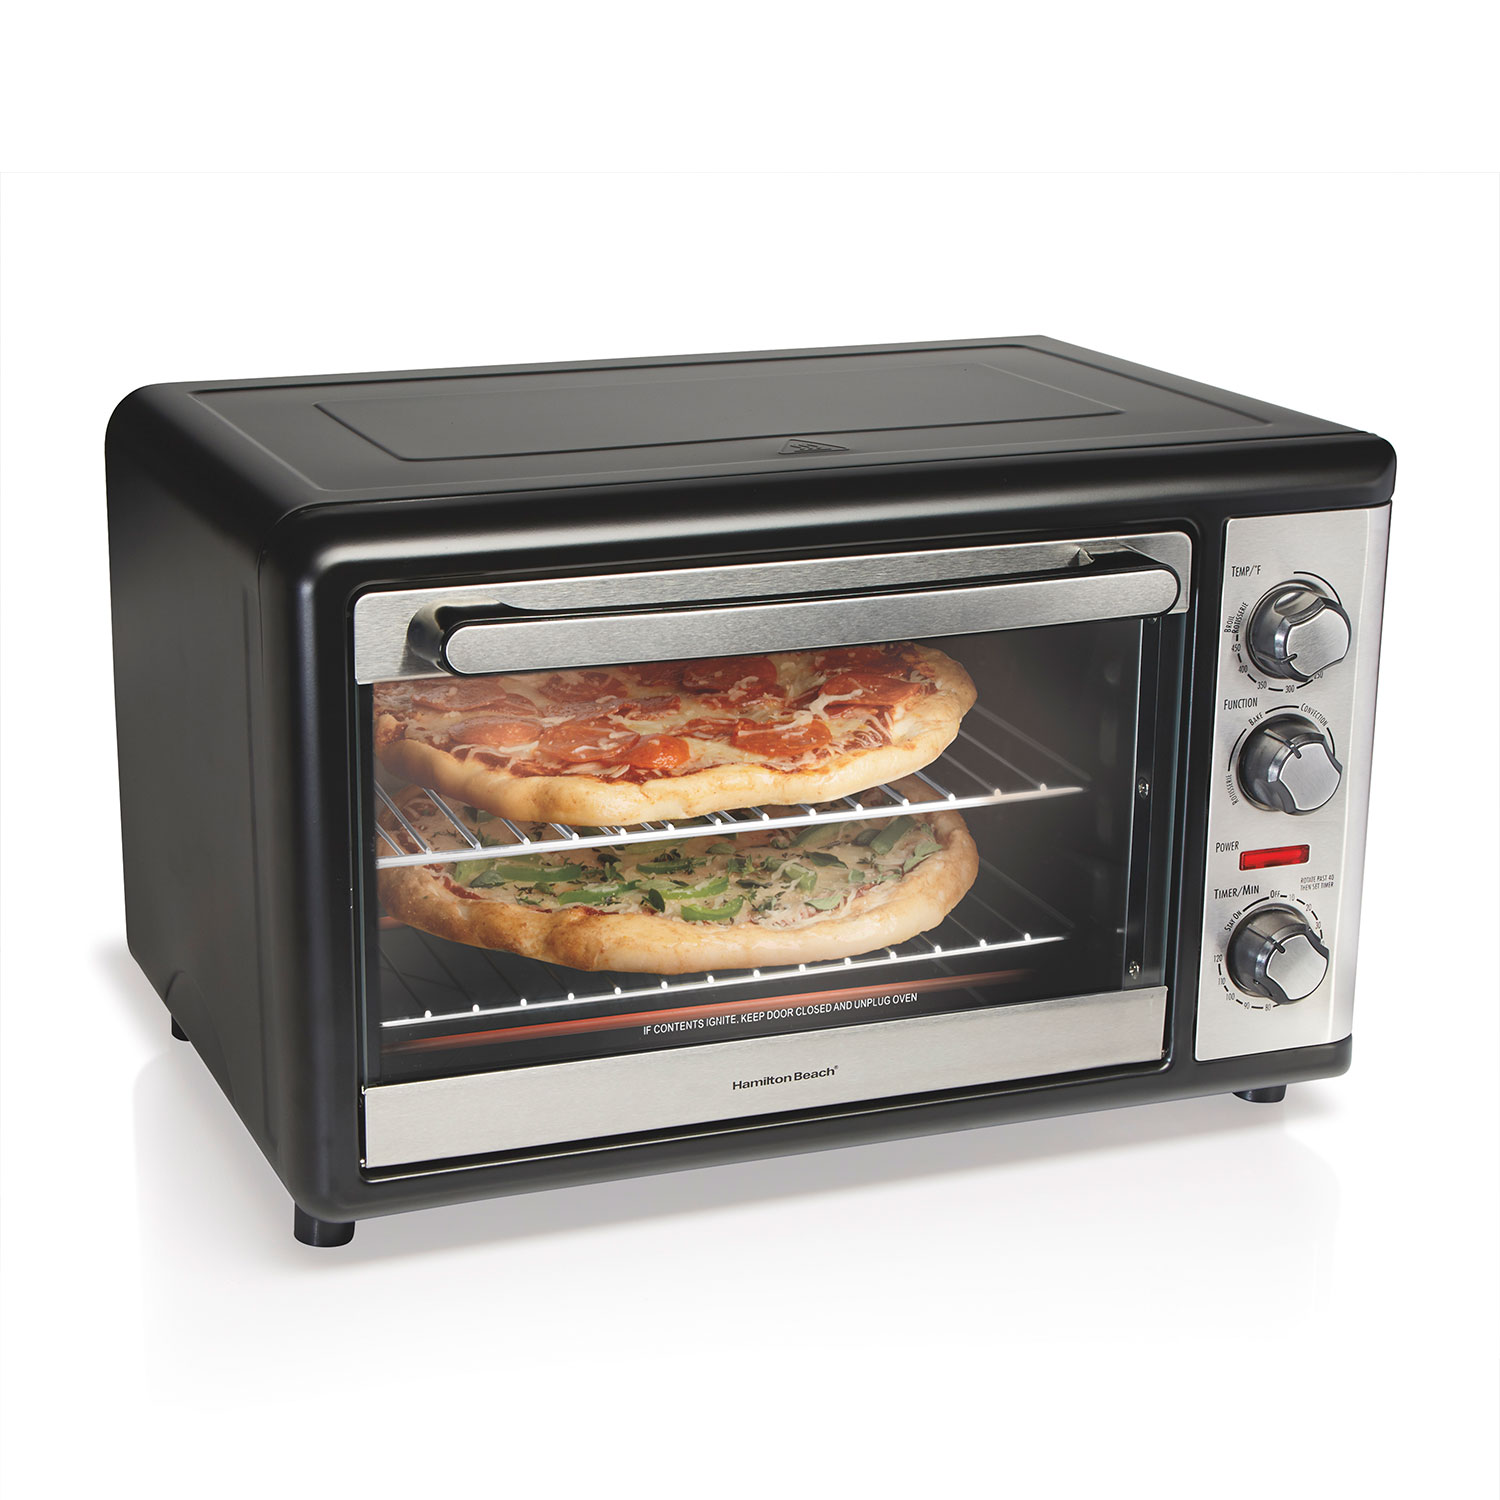 slice p best small steel ns toaster oven buy site multi stainless insignia